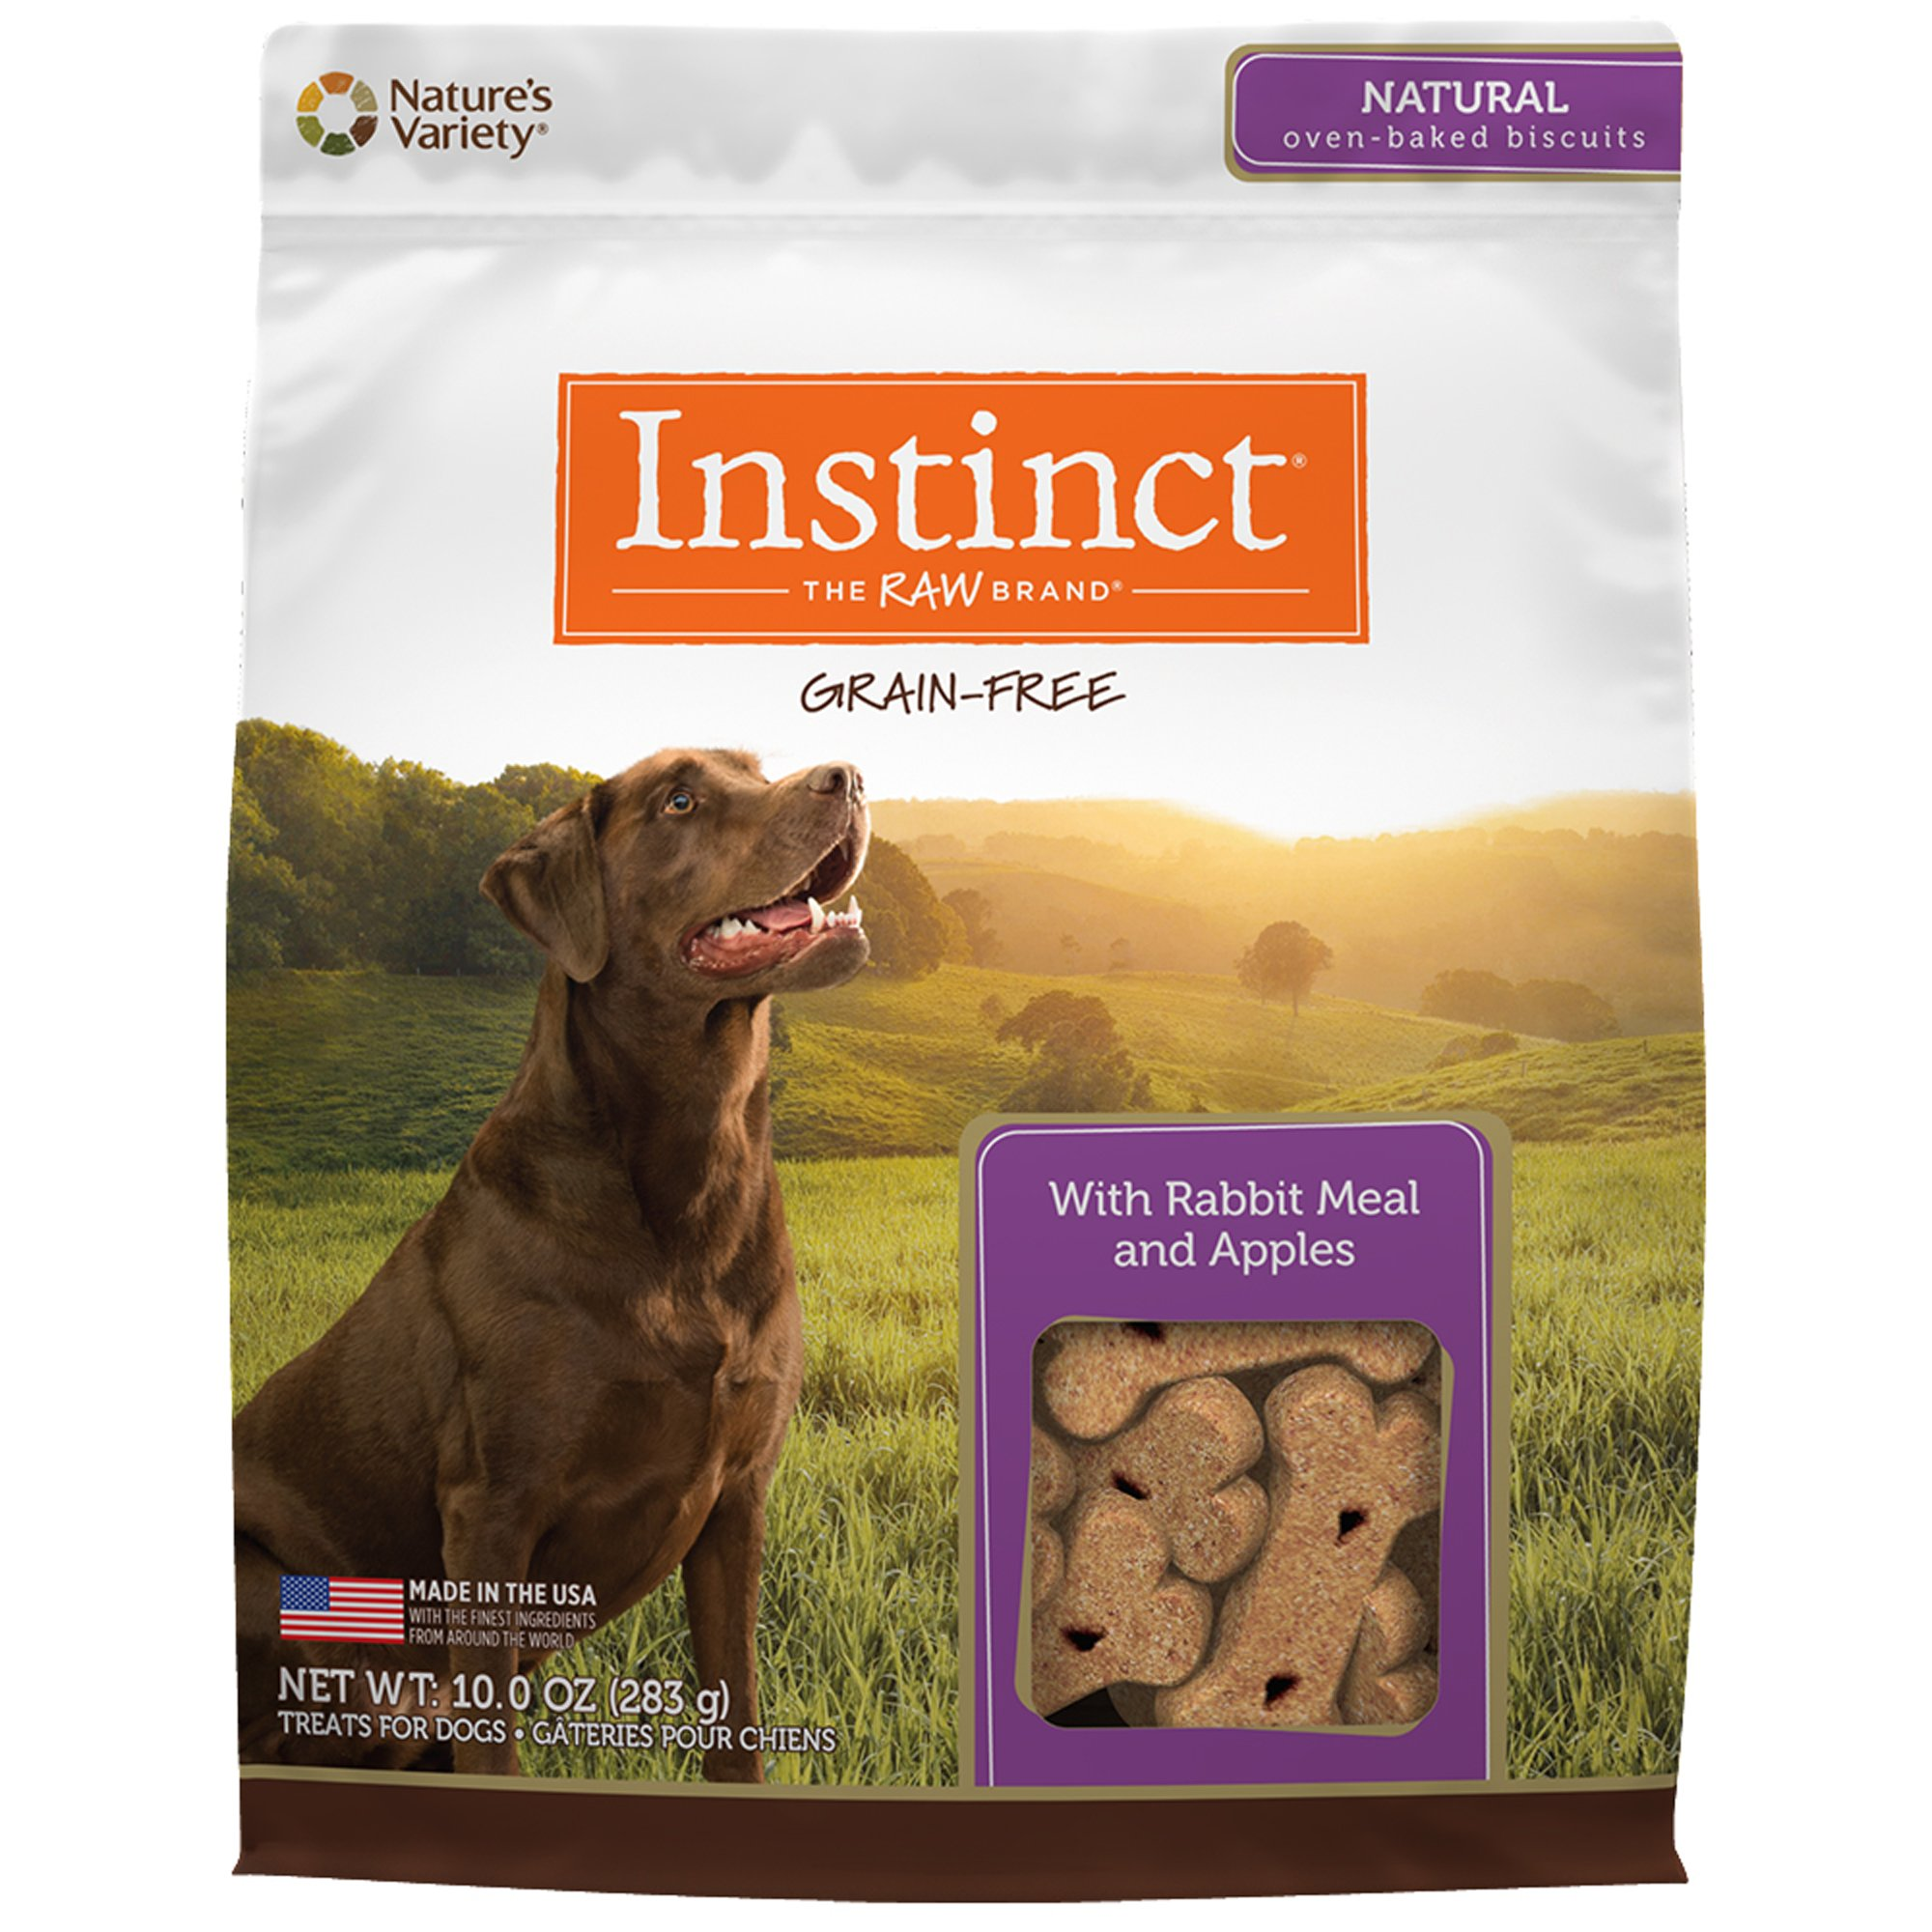 Instinct Grain Free Rabbit Amp Apples Biscuits By Nature S